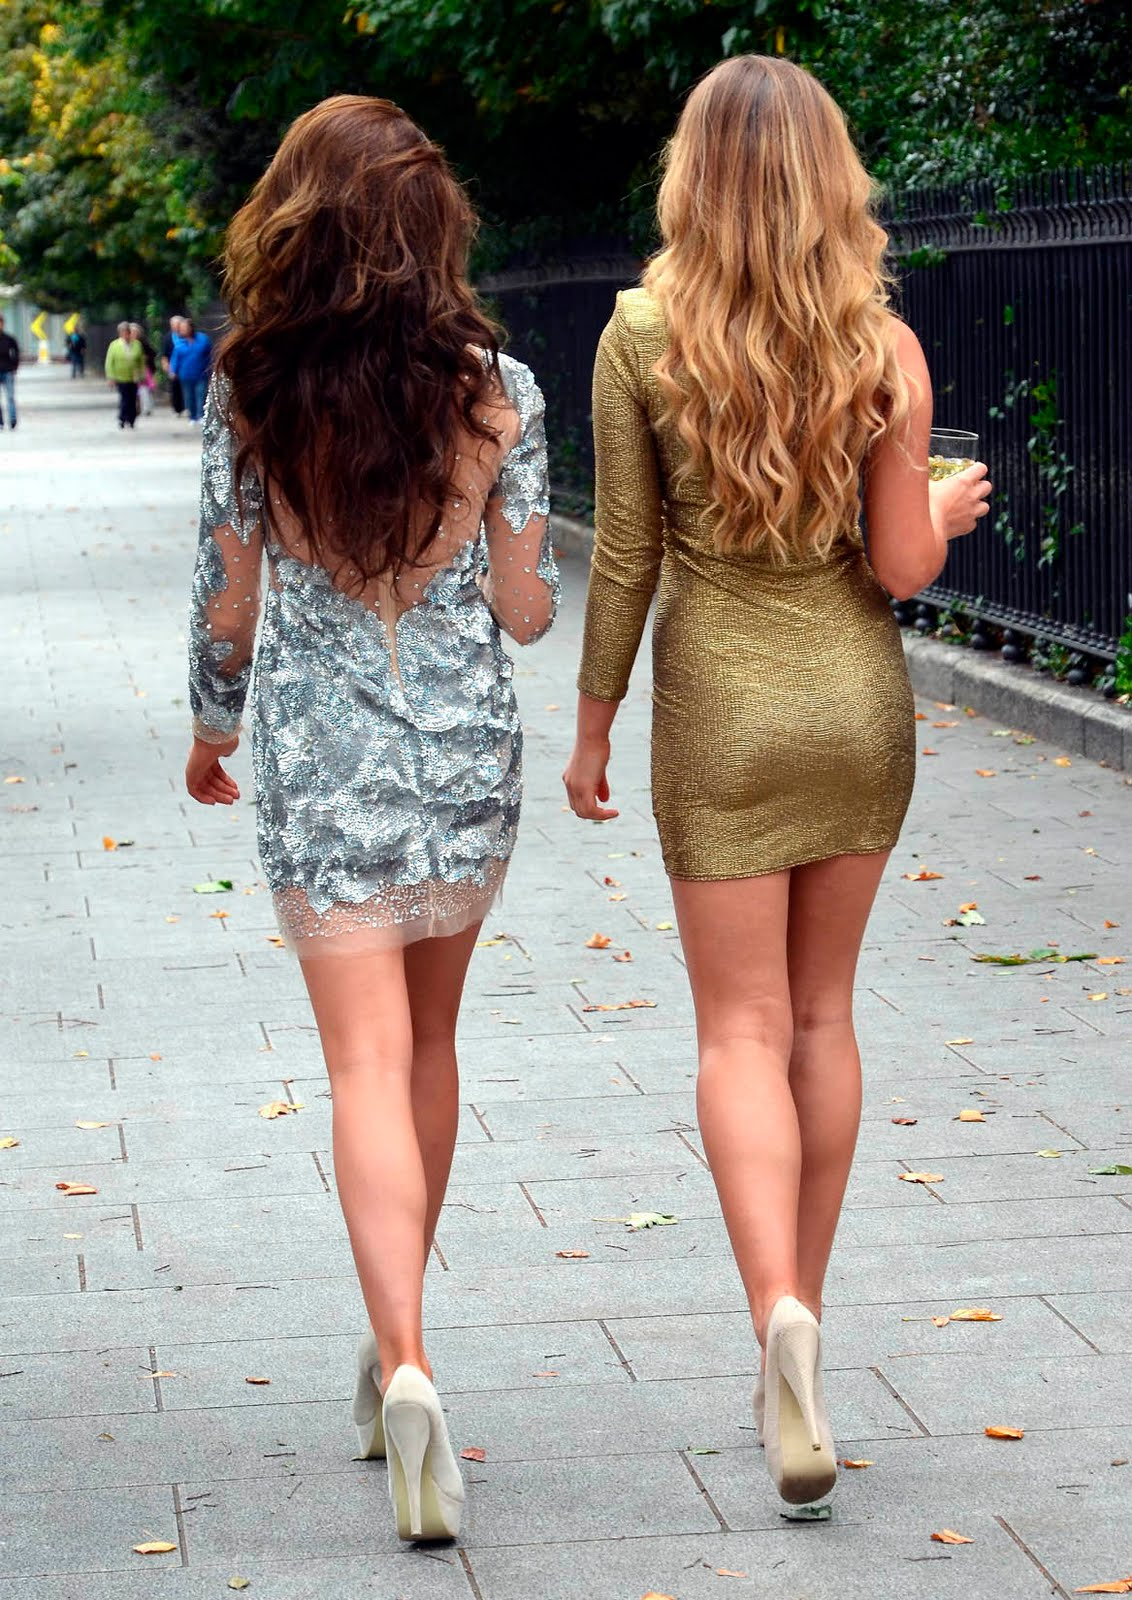 shiner cougar women Top 10 houston neighborhoods for dating a cougar cougarlifecom, the online dating site for women age 30+ and the men who love them, say these are they top neighborhoods in houston for finding a cougar on the prowl by john boyd on april 1, 2015 4:44 pm.